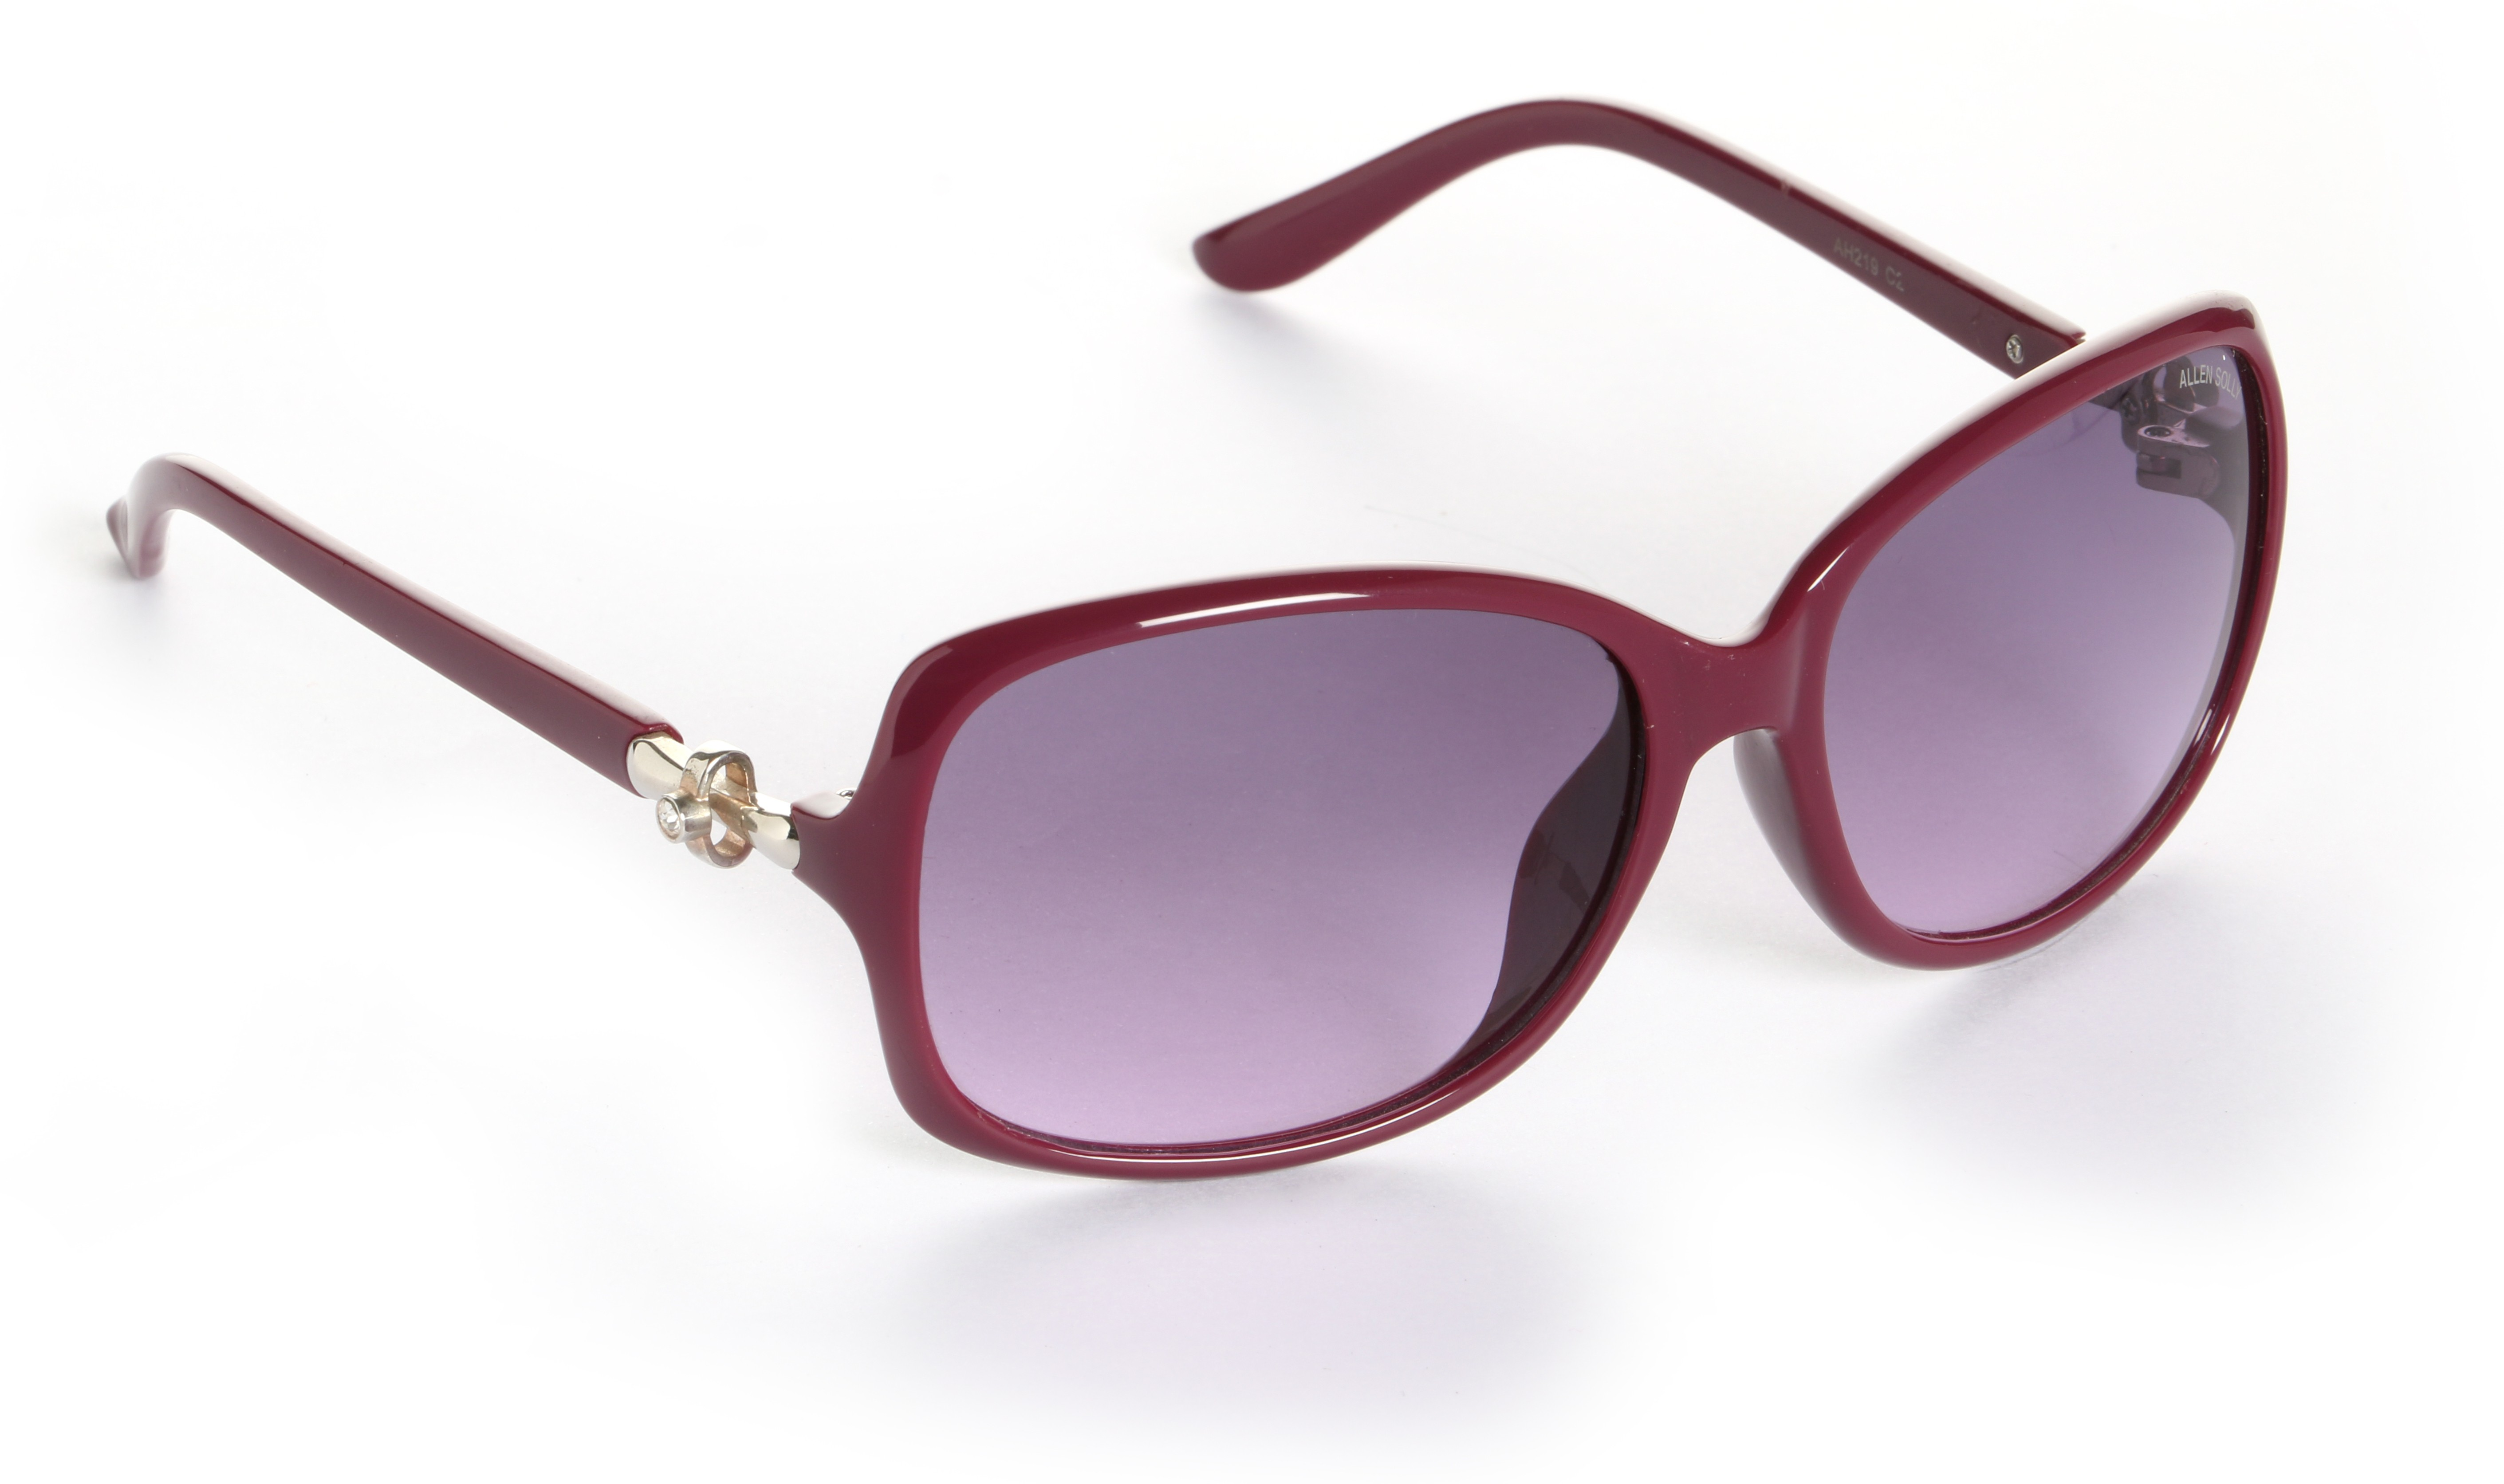 Deals - Delhi - Minimum 30% Off <br> Sunglasses<br> Category - sunglasses<br> Business - Flipkart.com